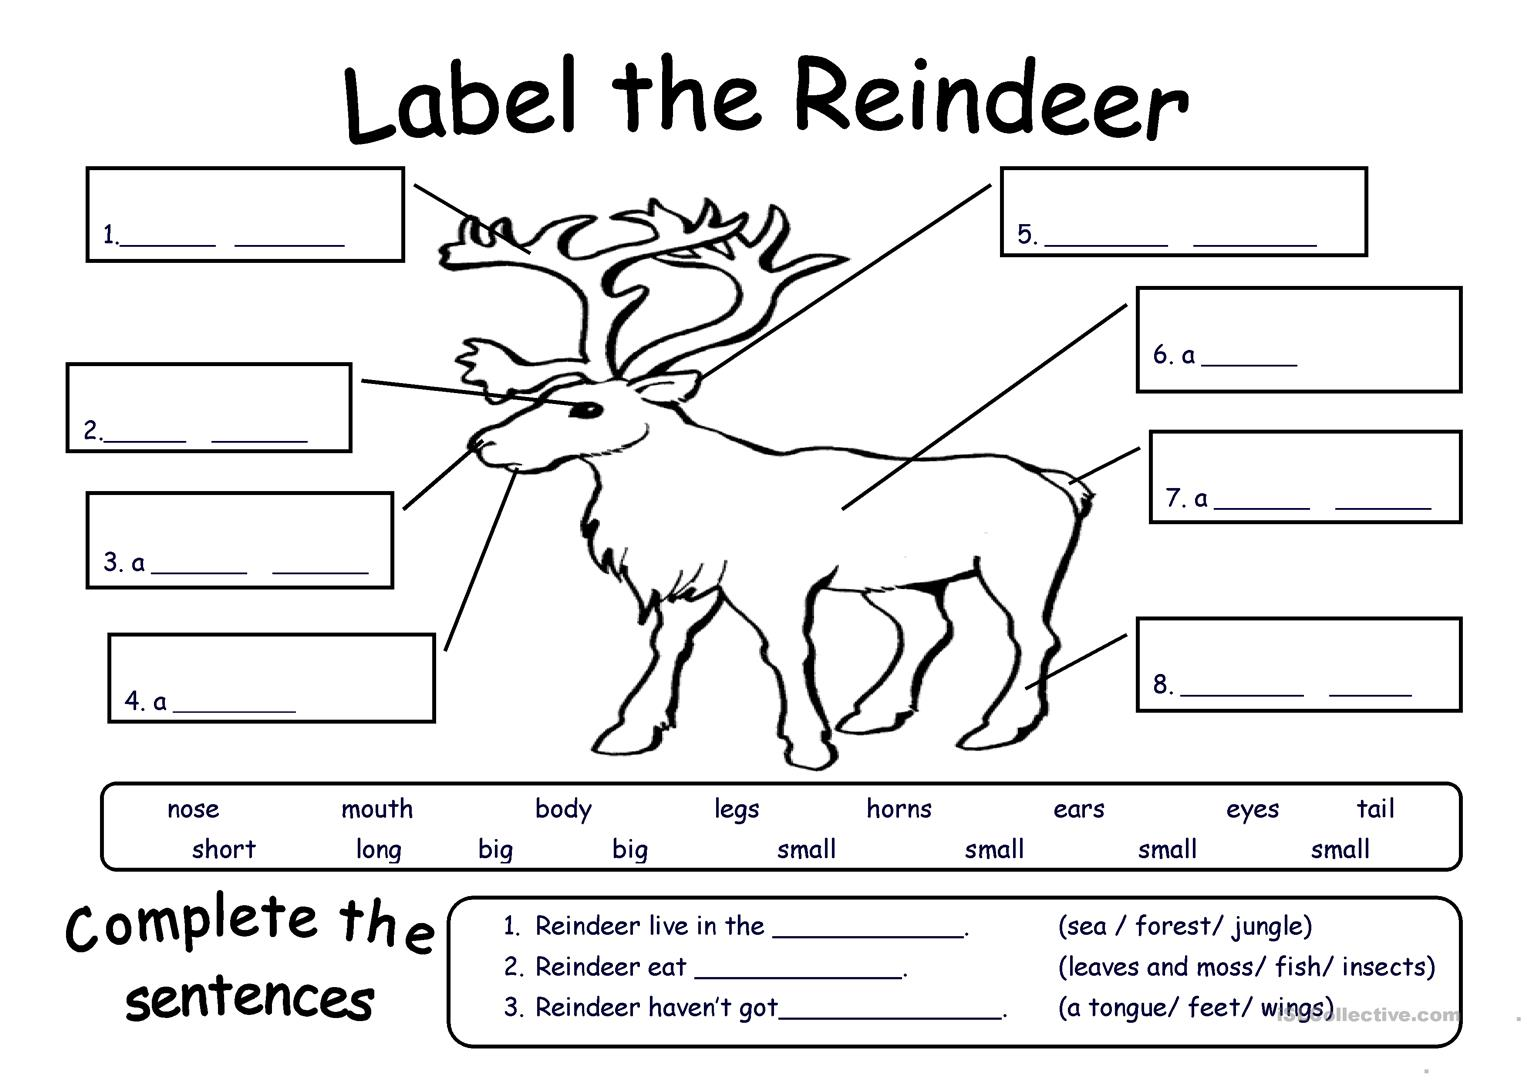 Reindeer Games Printable Worksheet